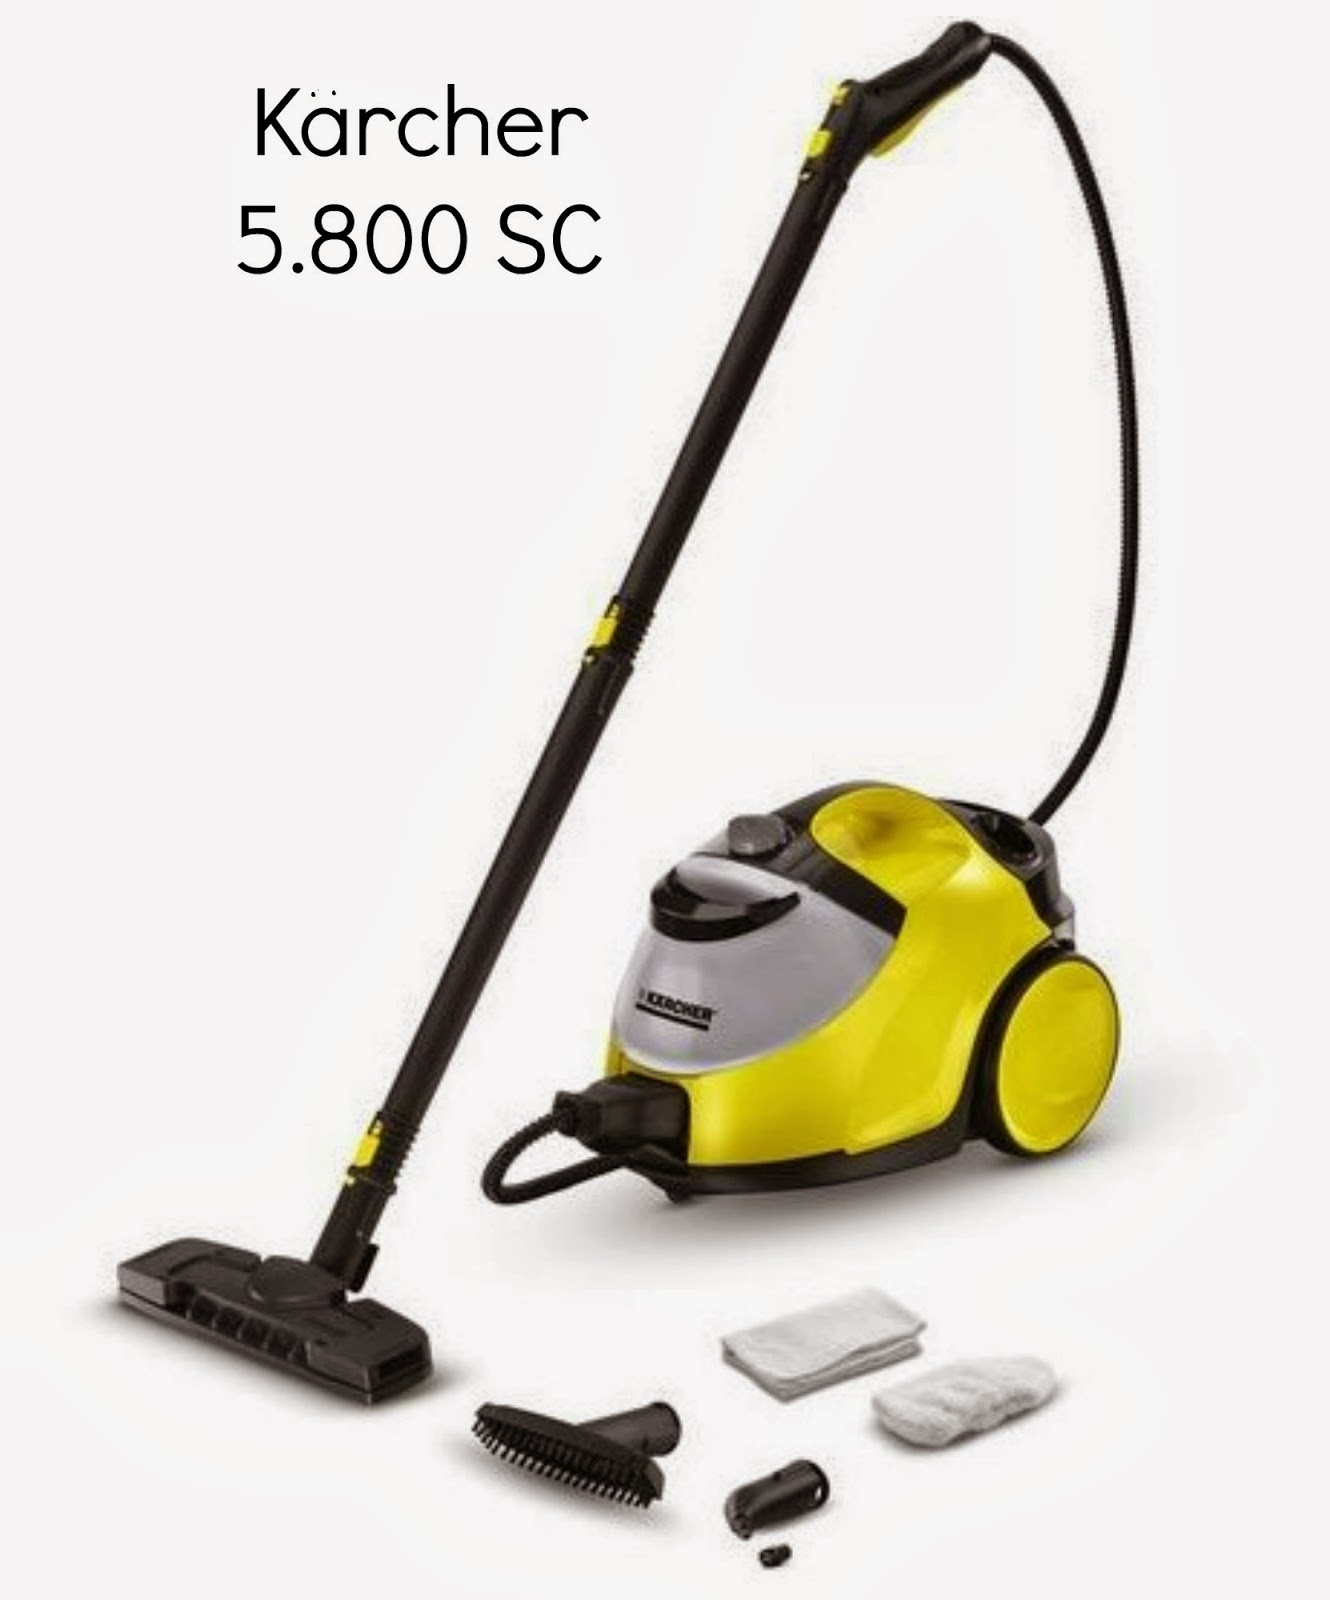 emmys mummy karcher c steam cleaner review. Black Bedroom Furniture Sets. Home Design Ideas